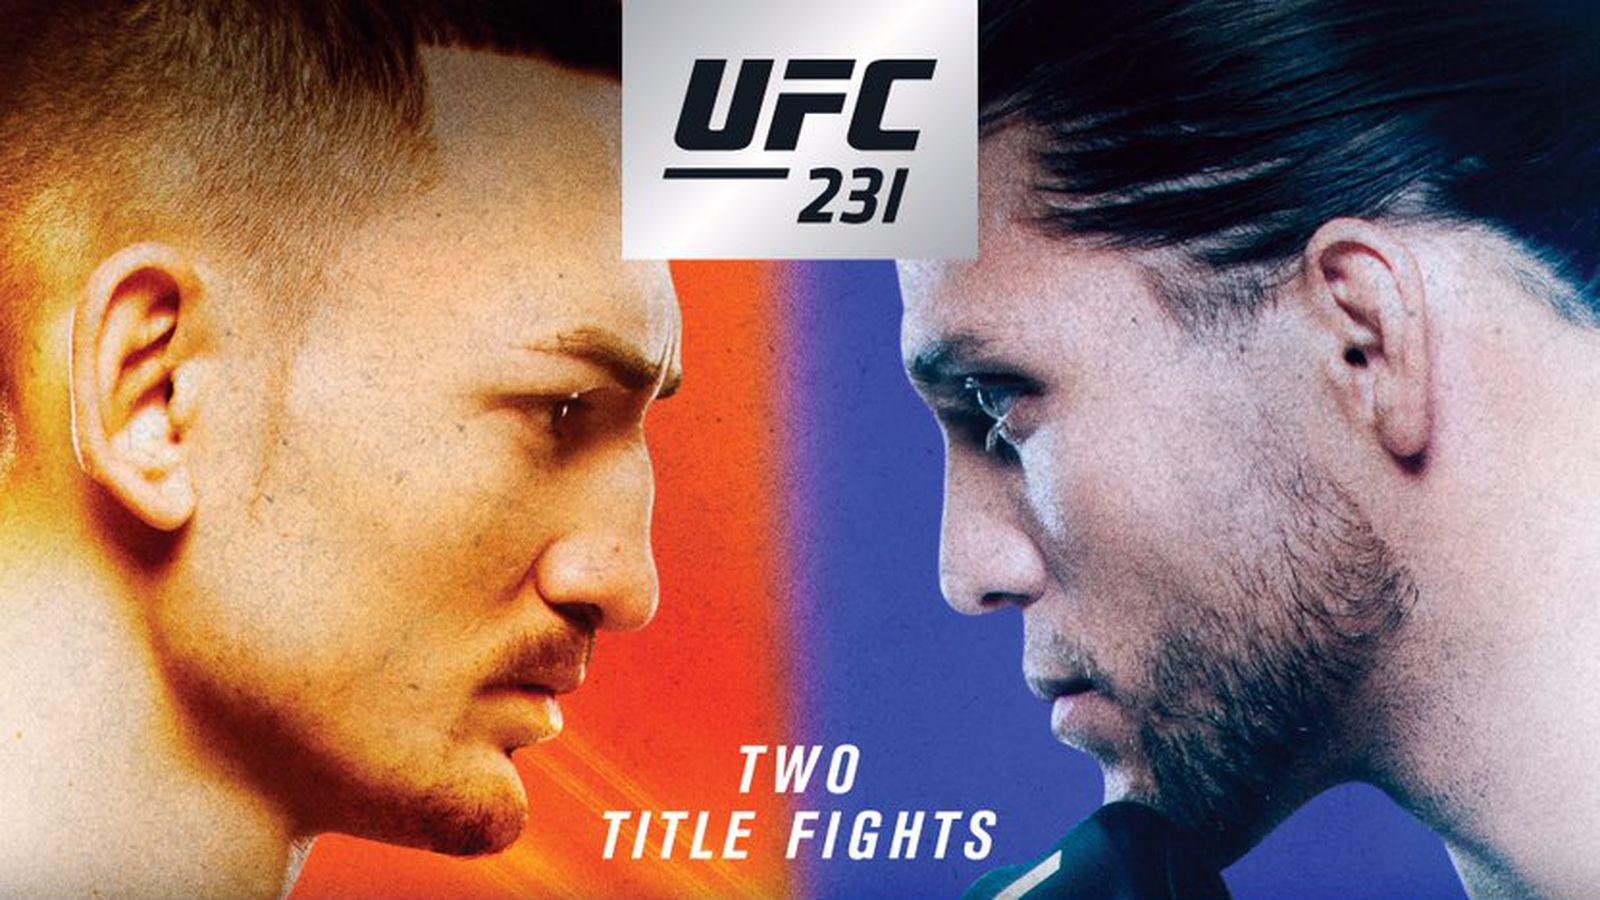 Pic: UFC 231 official poster drops for 'Holloway vs Ortega'